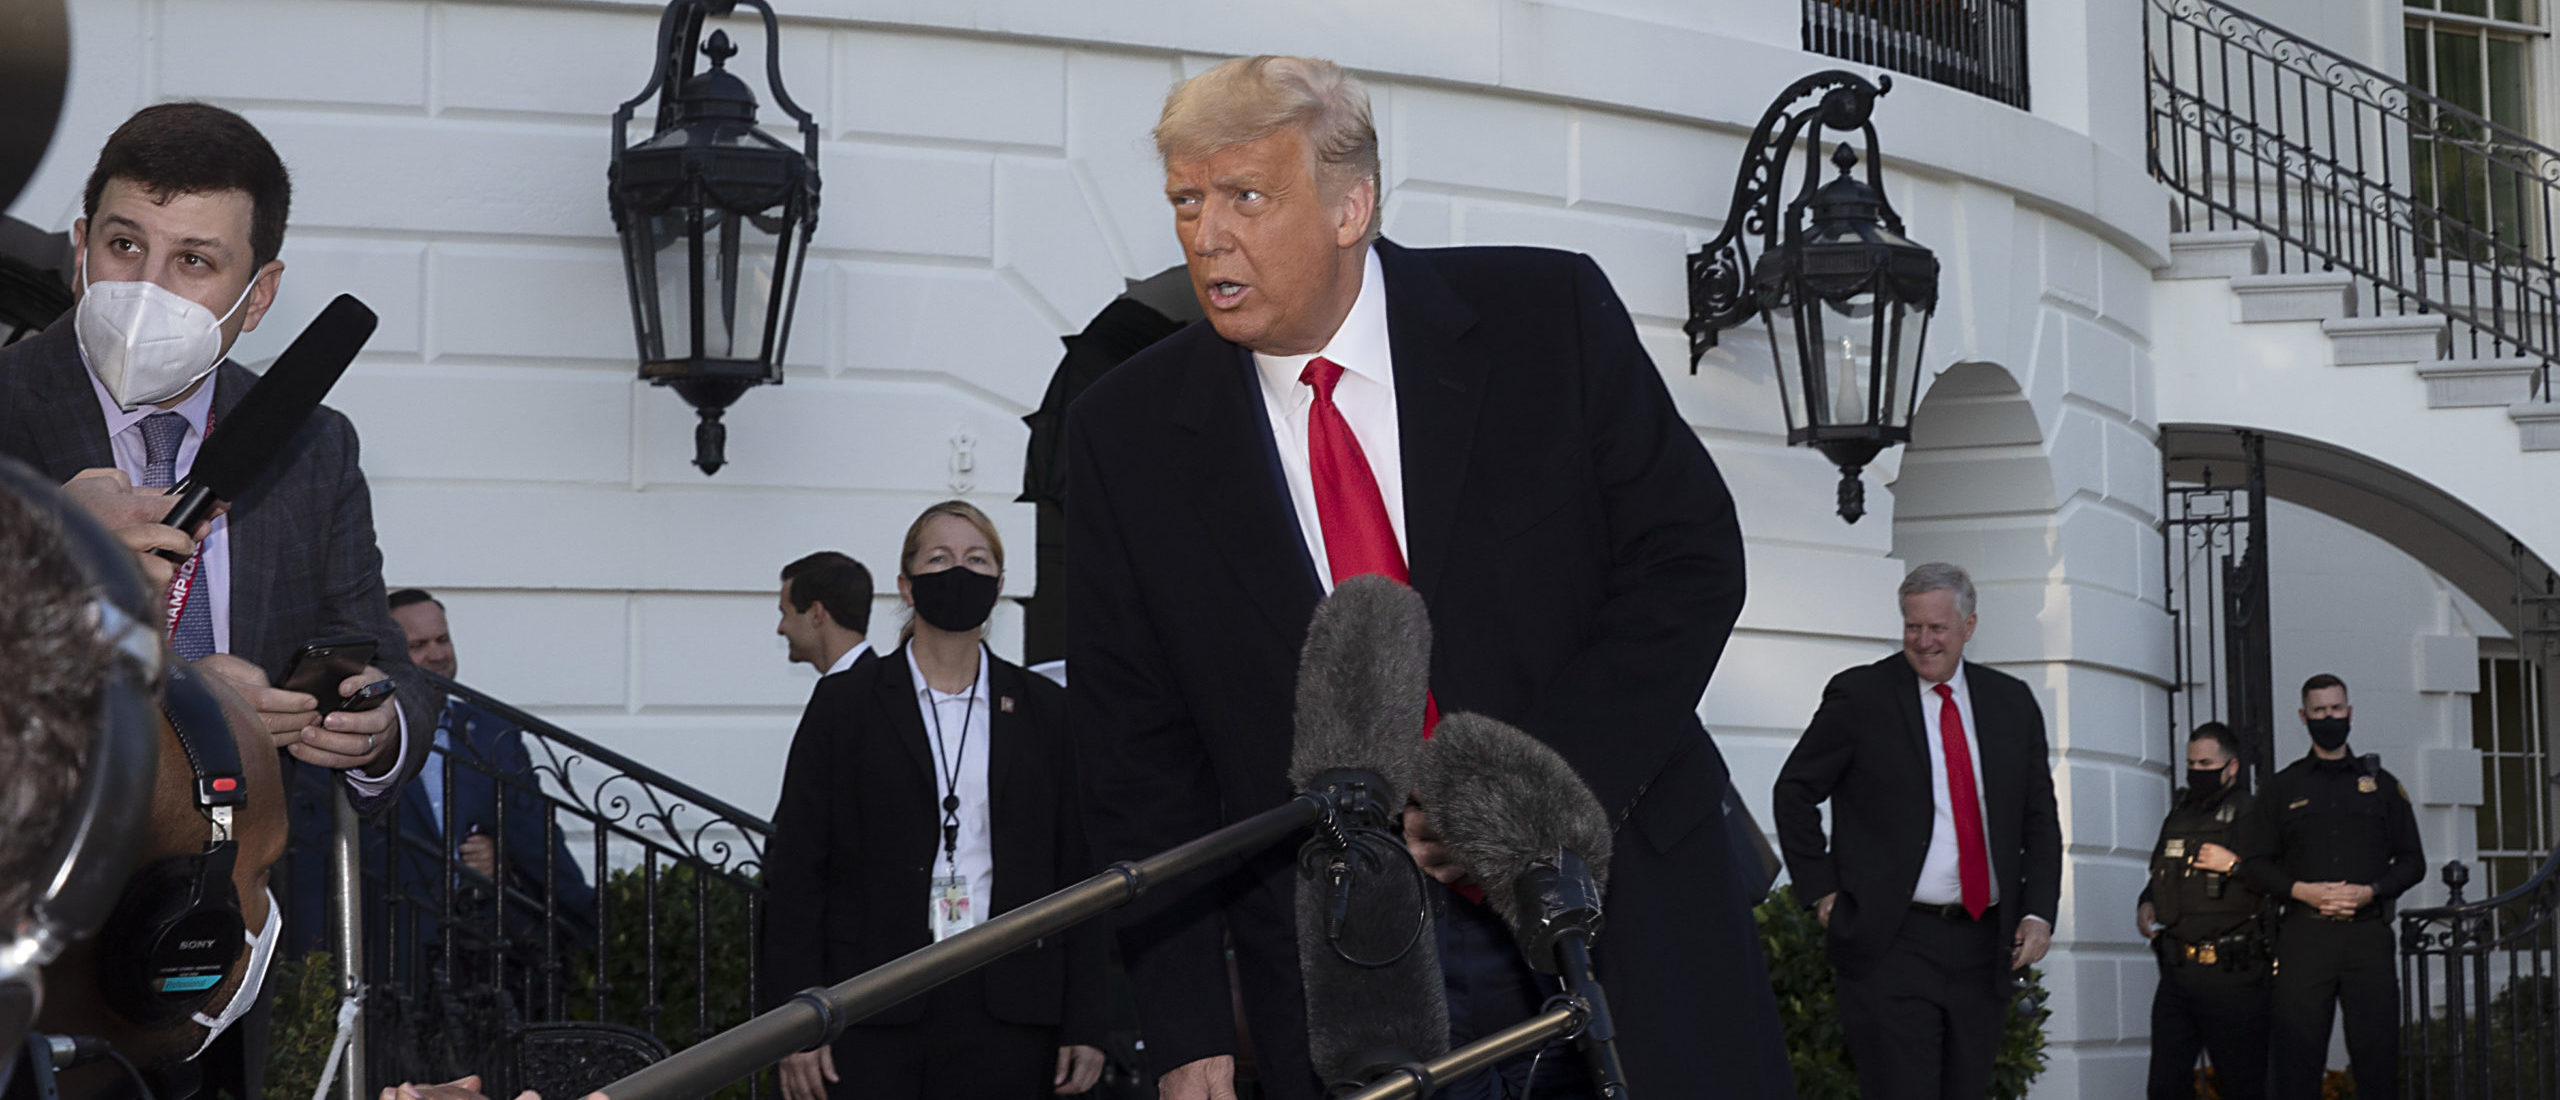 WASHINGTON, DC - OCTOBER 21: U.S. President Donald Trump talks to the media outside the White House on October 21, 2020 in Washington, DC. President Trump is headed to a rally in Gastonia, North Carolina, as he ramps up his public event schedule with less than two weeks until the election. (Tasos Katopodis/Getty Images)